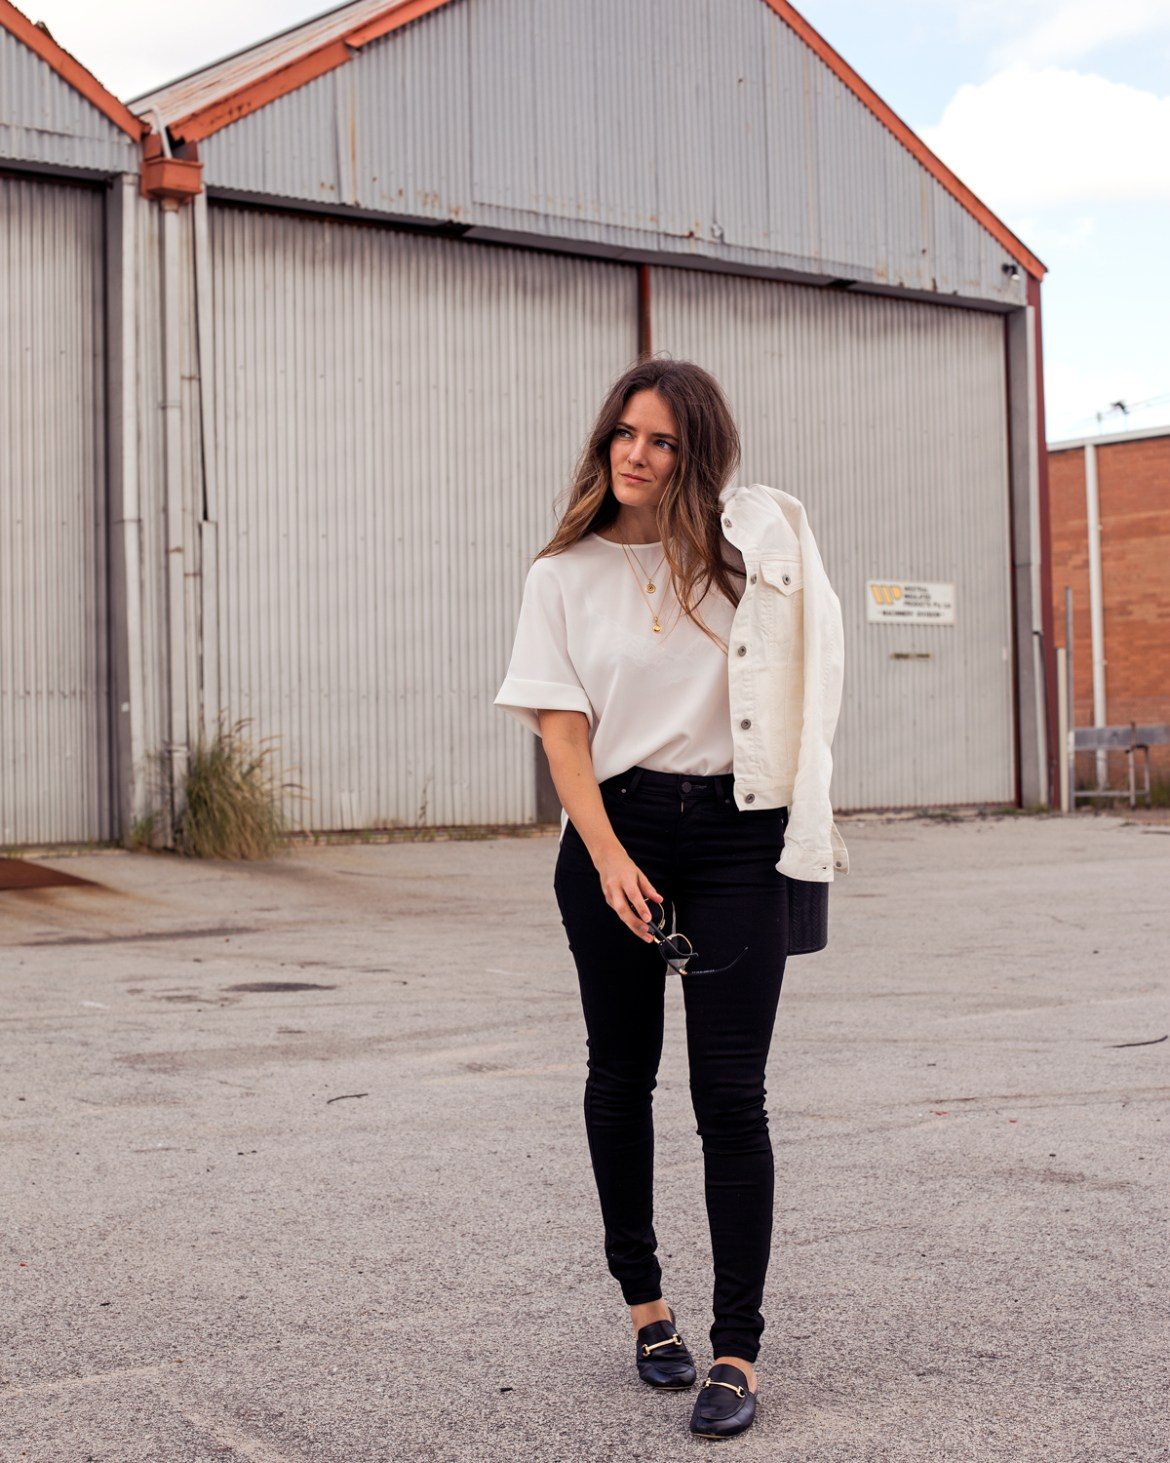 Uniqlo Perth is finally open! Fashion blogger Jenelle Witty from Inspiring Wit wearing Uniqlo rayon blouse with white denim jacket and black skinny jeans outfit